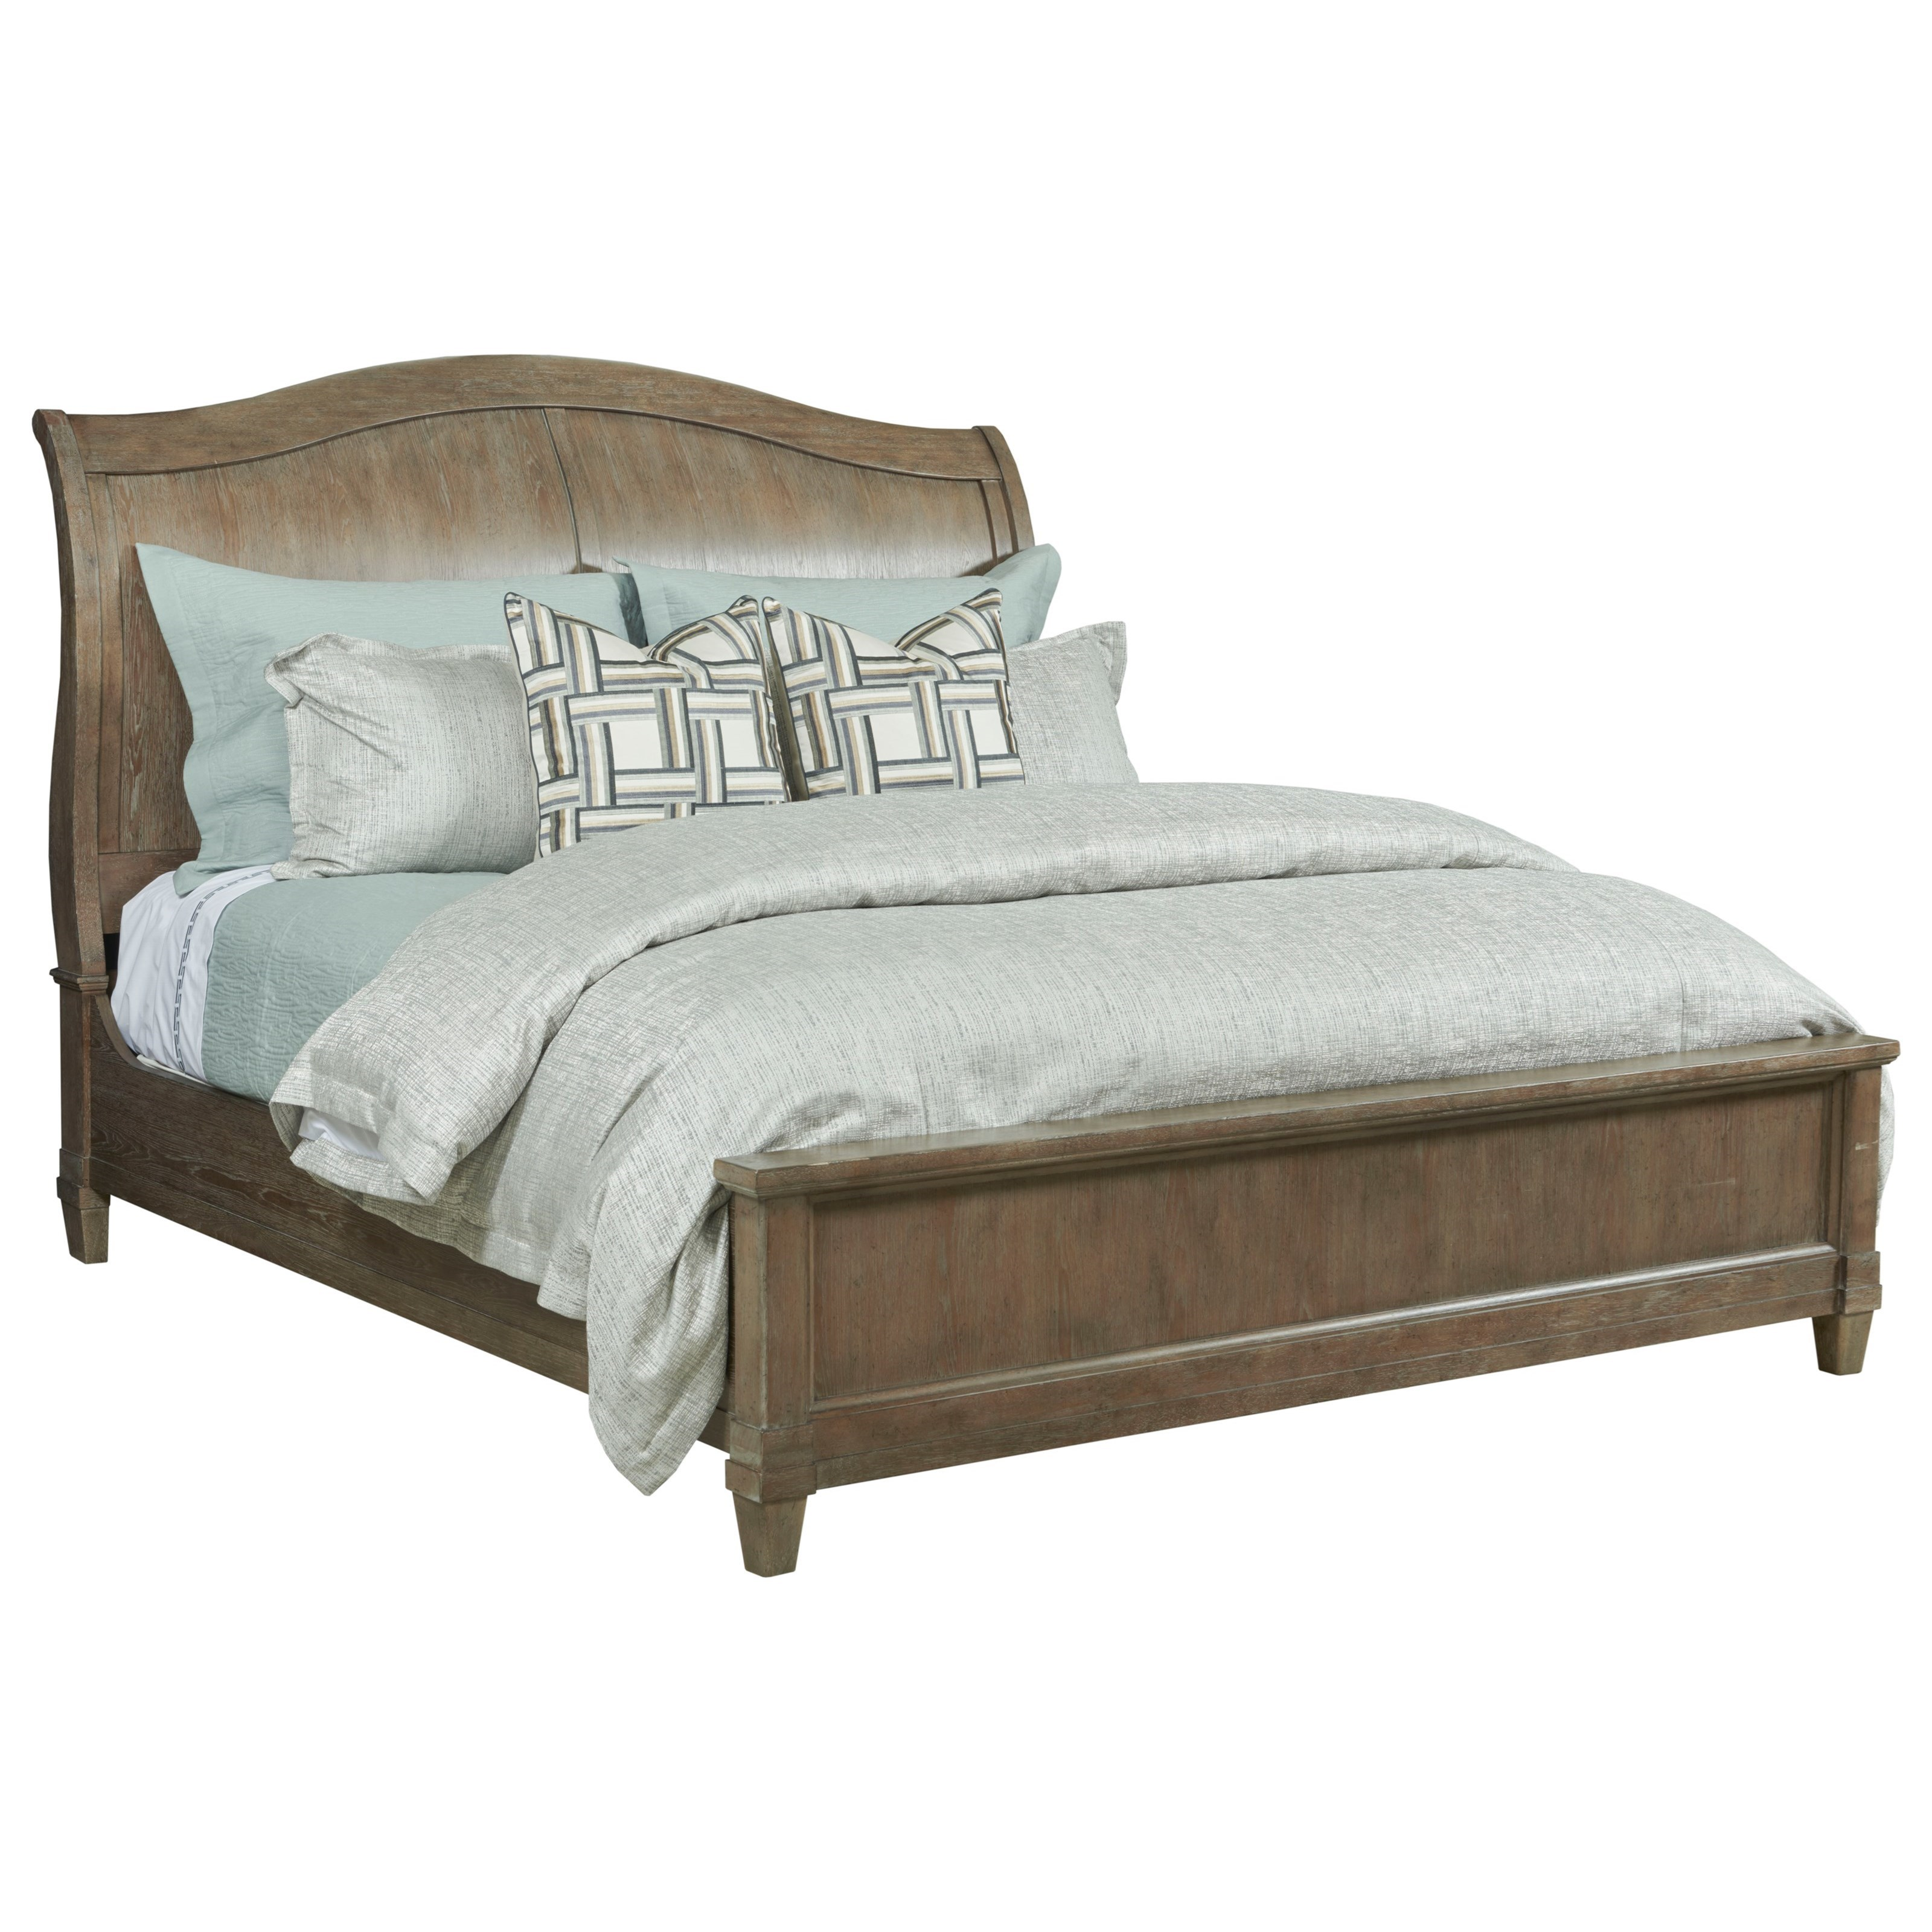 Anson California King Sleigh Bed by American Drew at Alison Craig Home Furnishings